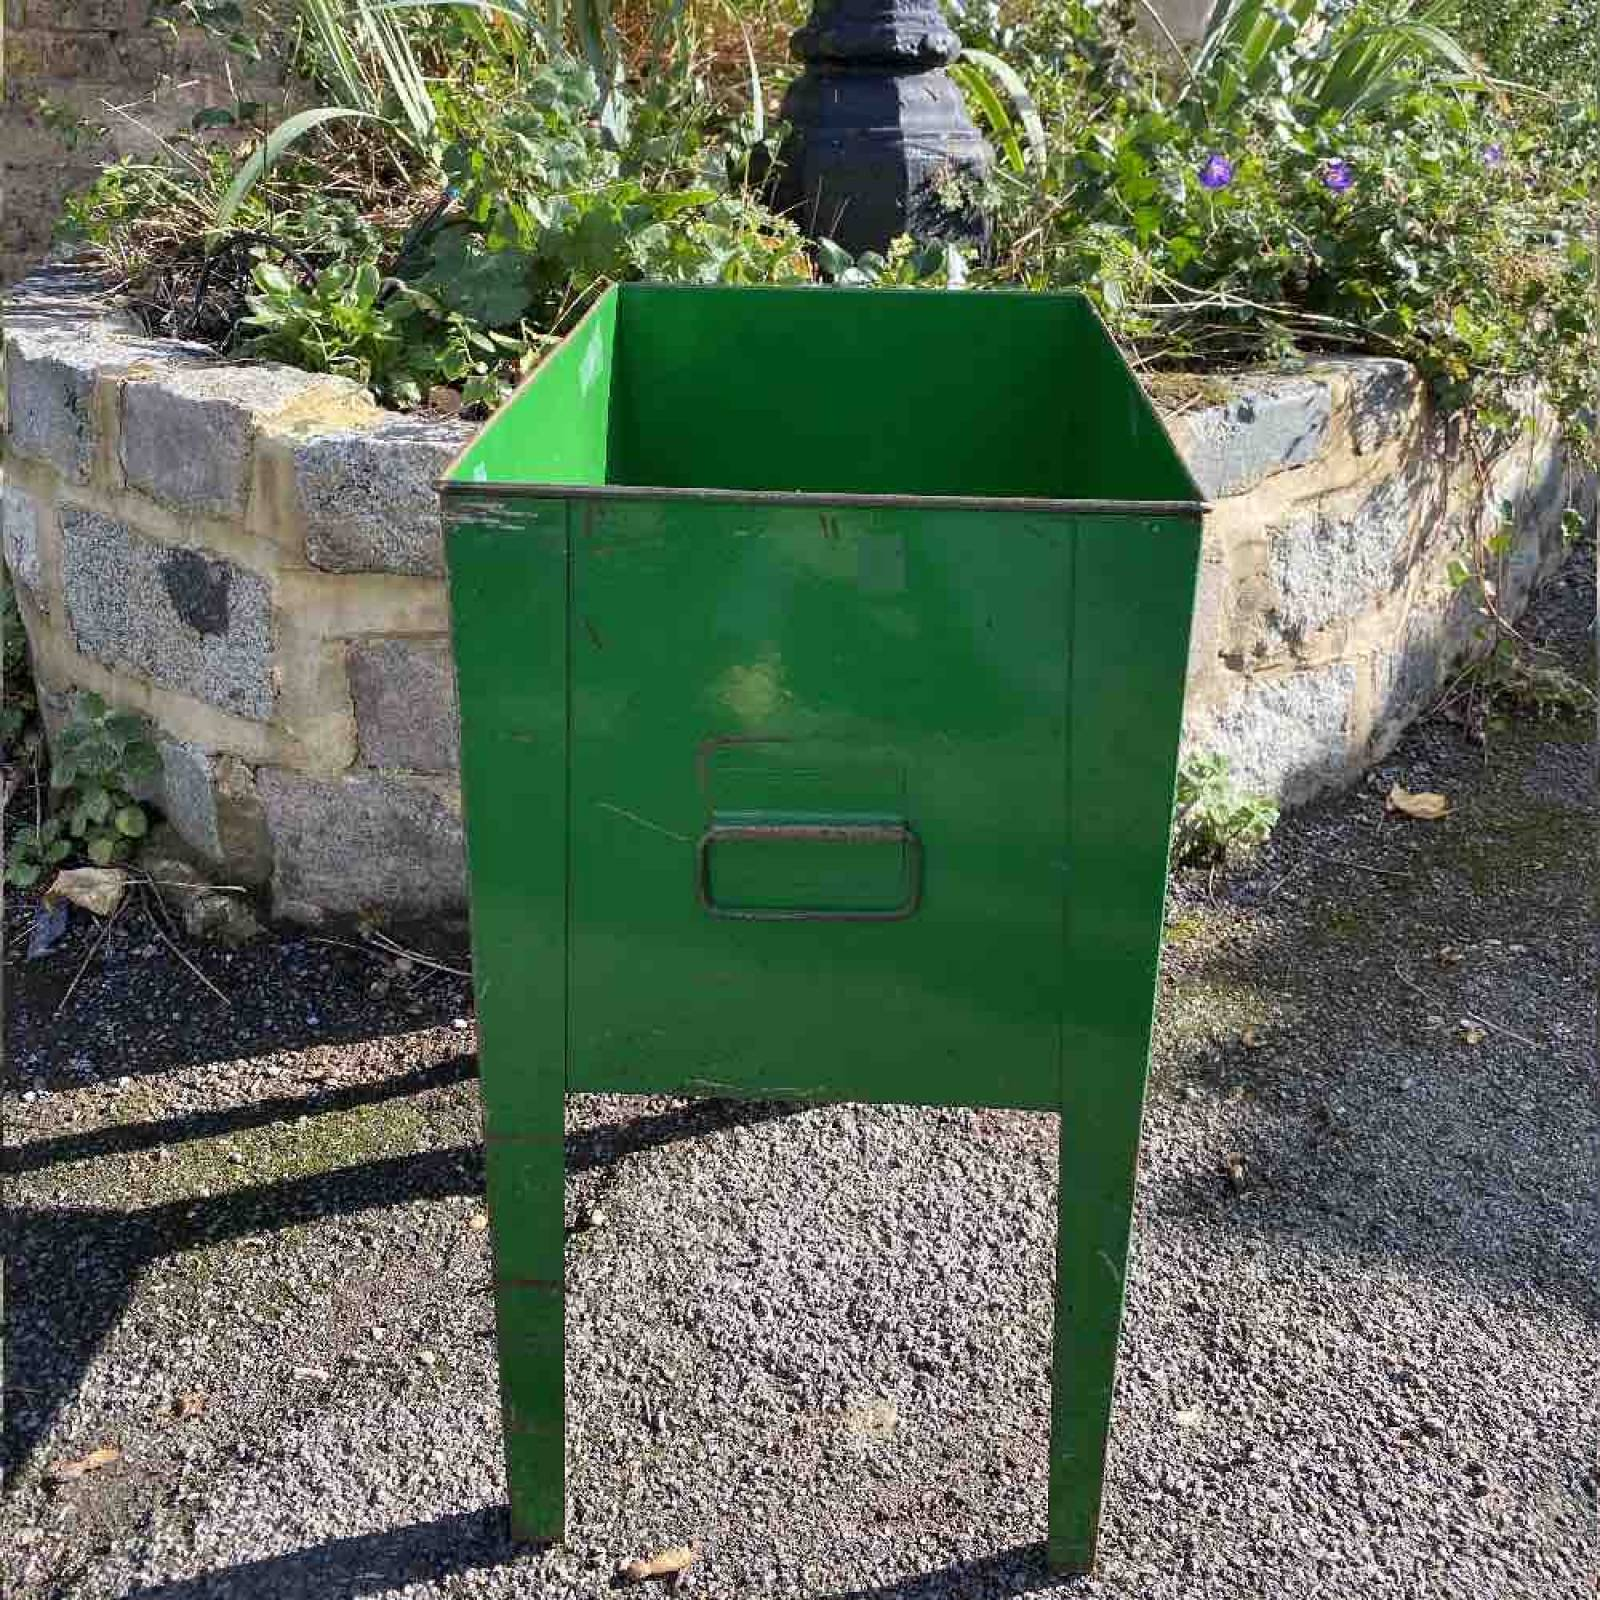 Green Rectangular Flower Bin 2 Handles & Legs thumbnails